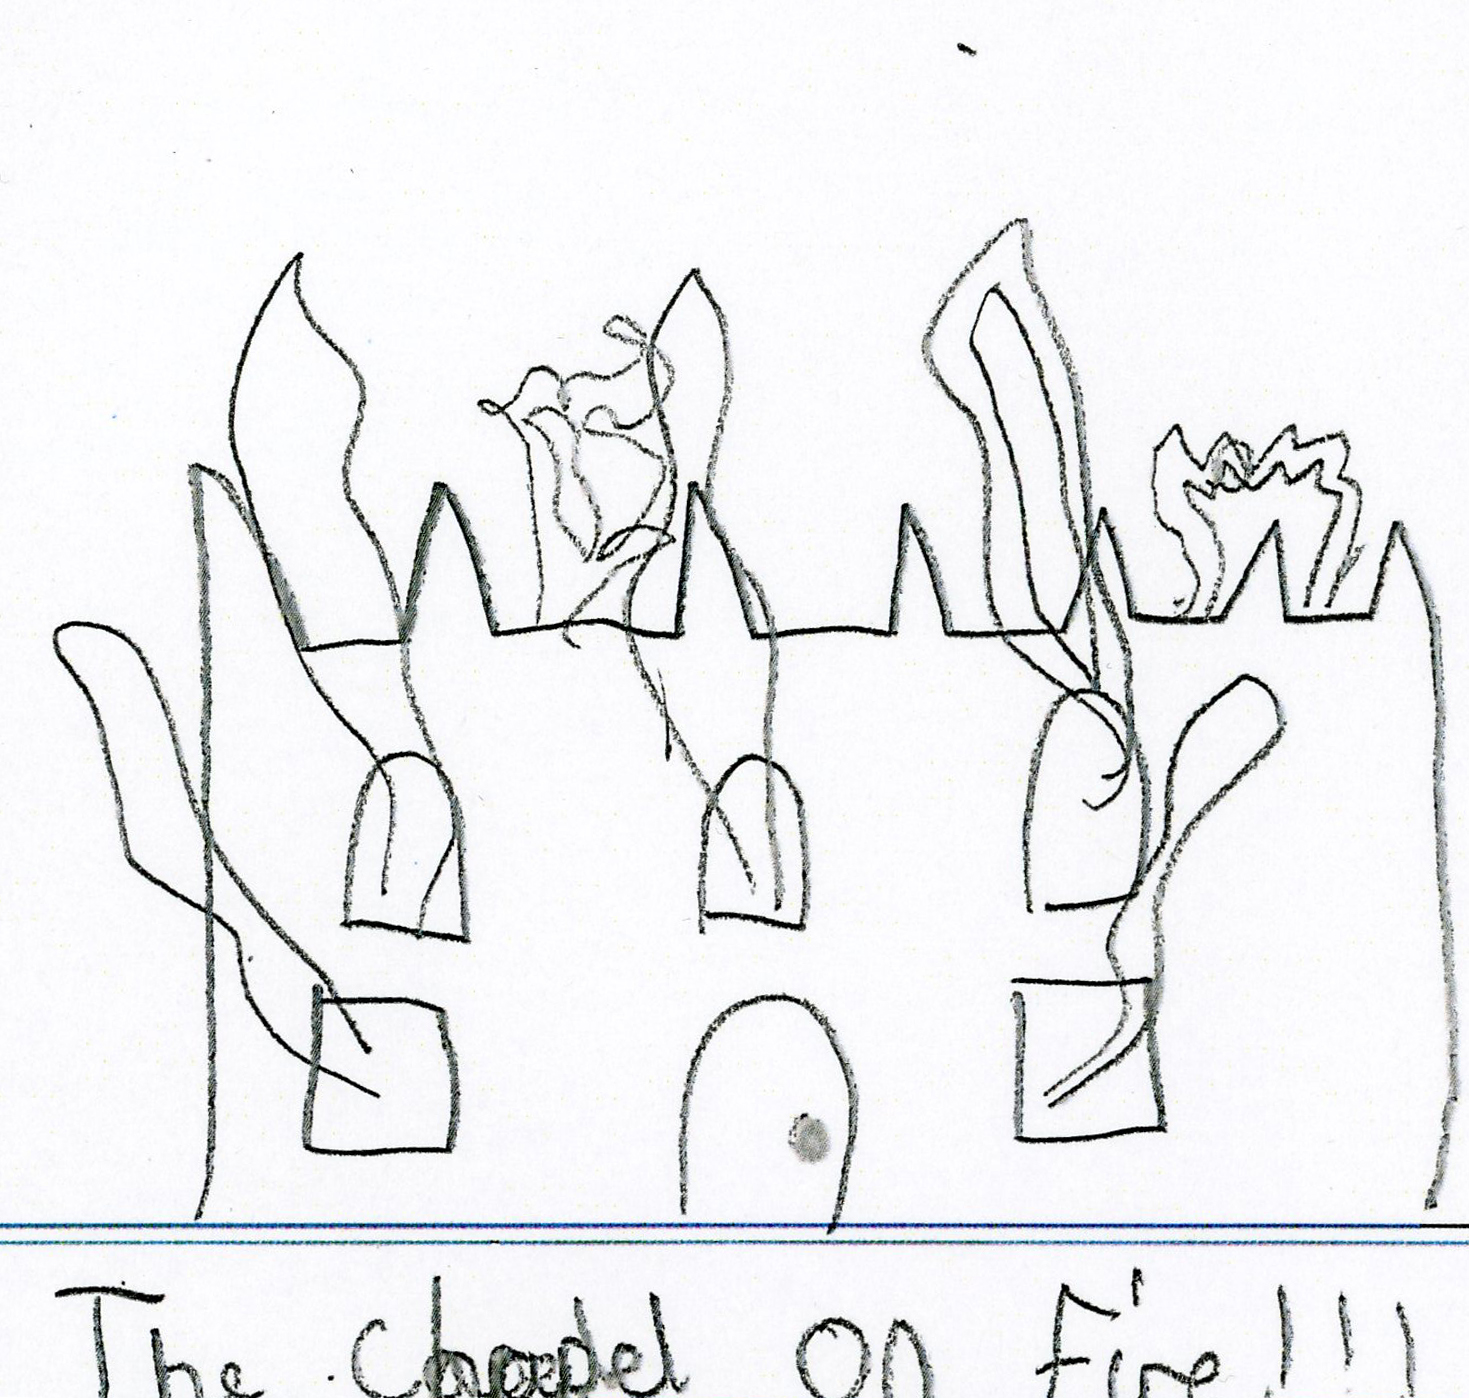 Downside Abbey Pupil Drawing